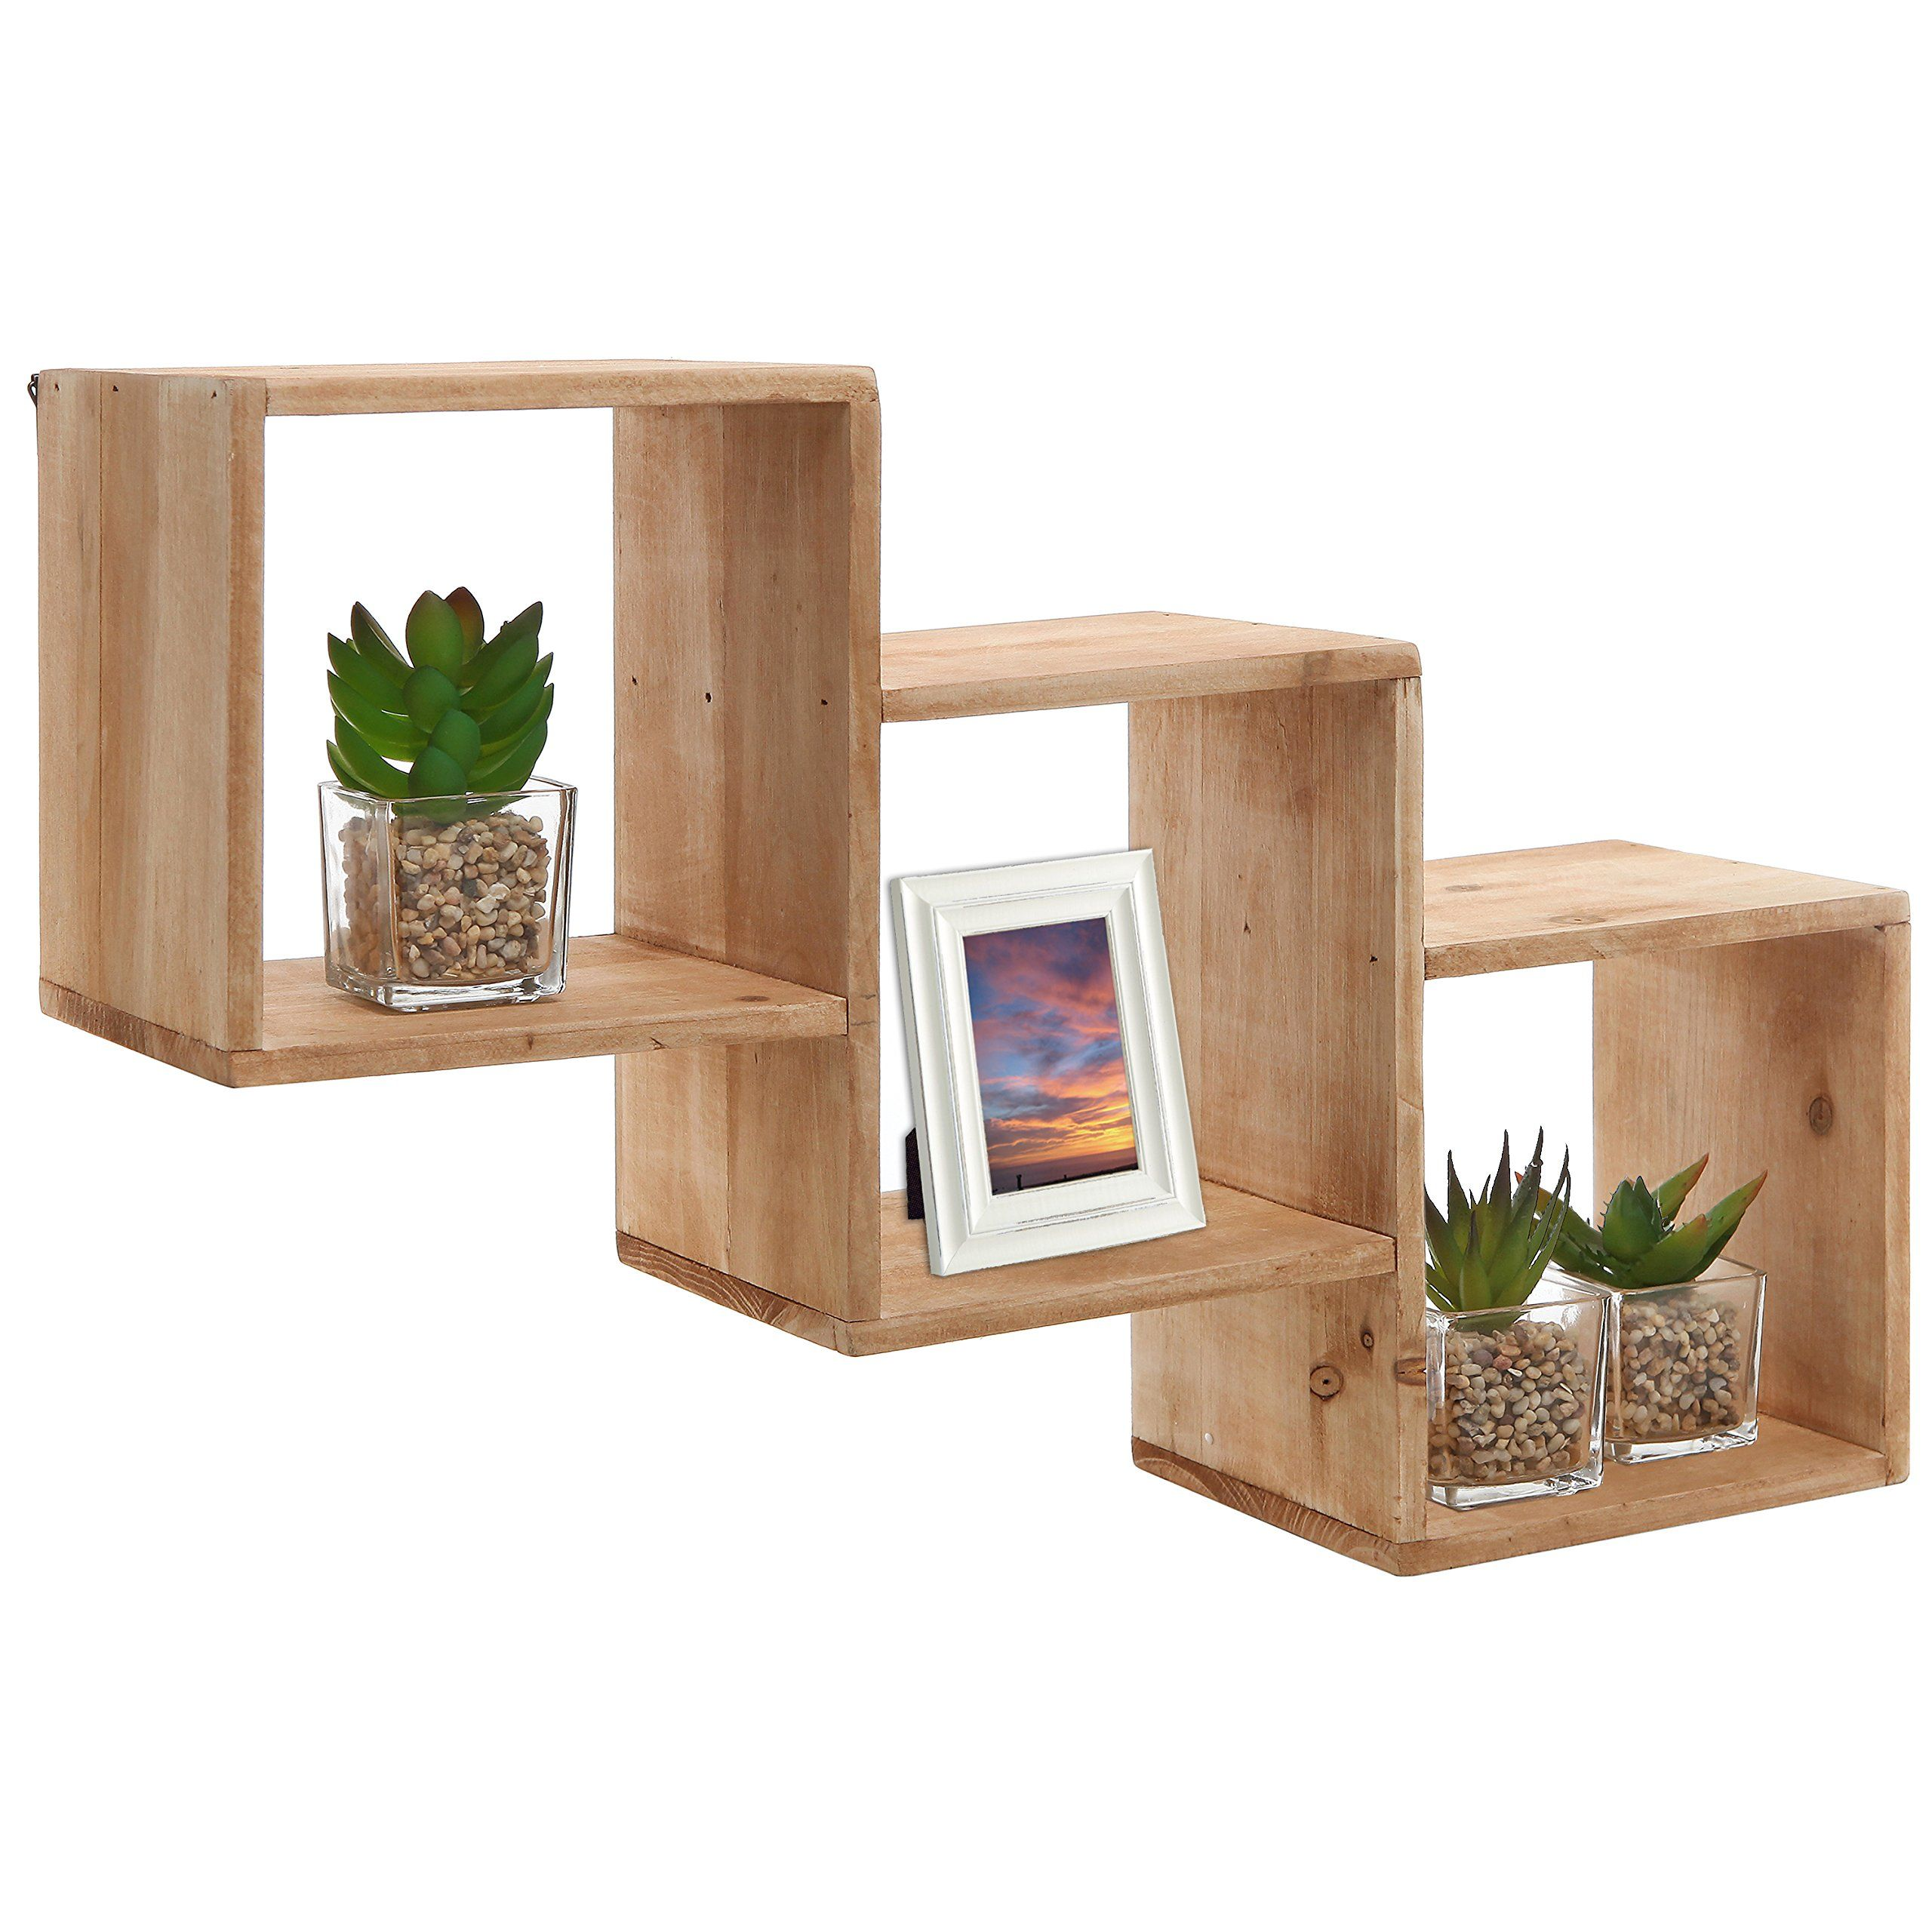 Functional wall decor by nexxt cubbi accent wall shelves set of amazon country rustic wall mounted unfinished natural wood square diagonal storage shelves rack amipublicfo Image collections